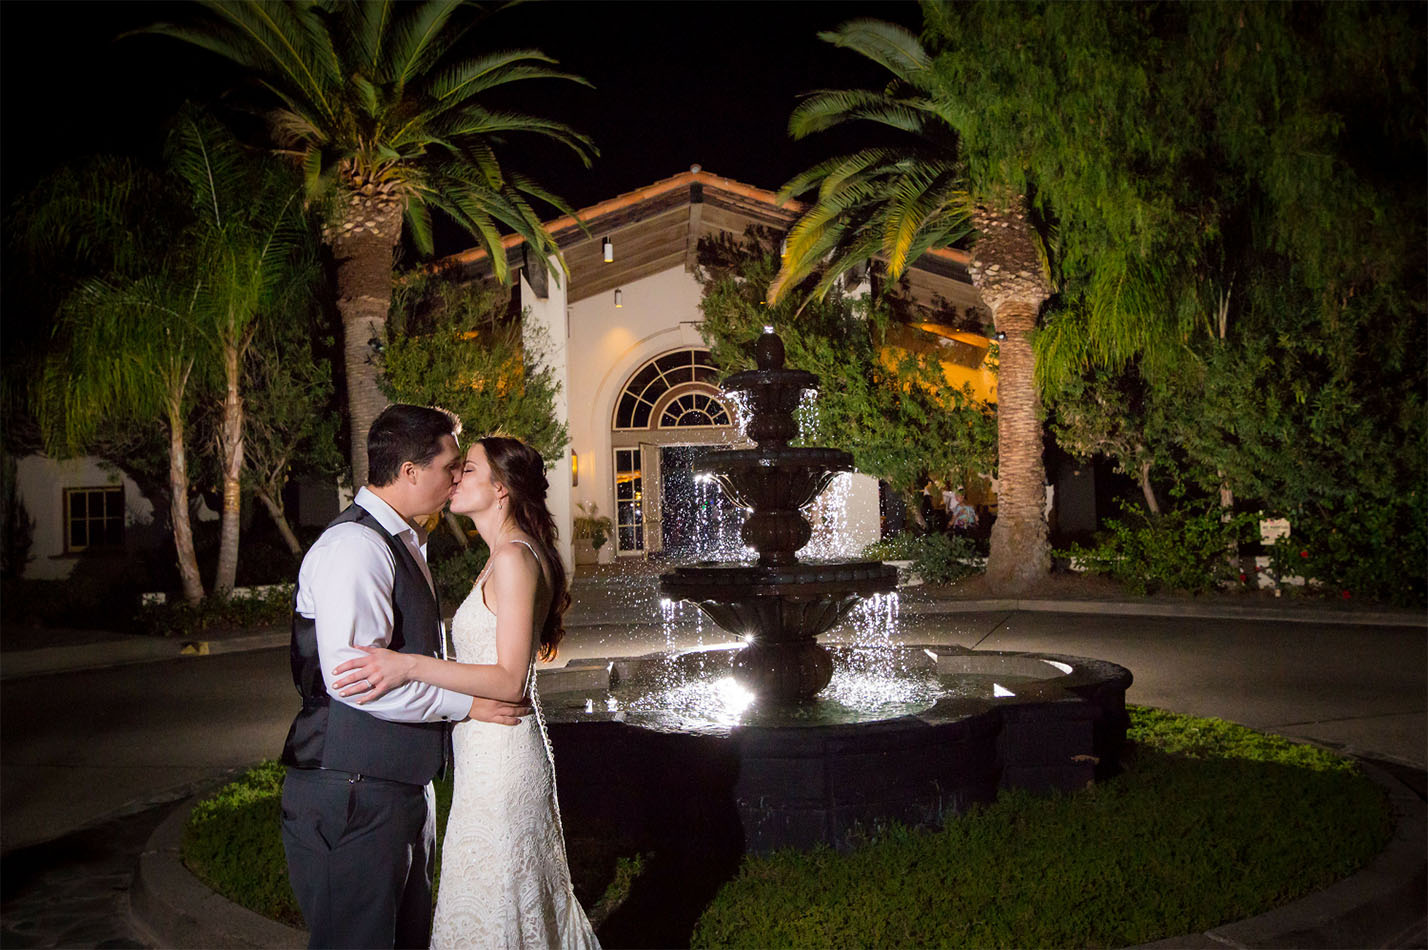 Gorgeous fountain backdrop for beautiful wedding portraits